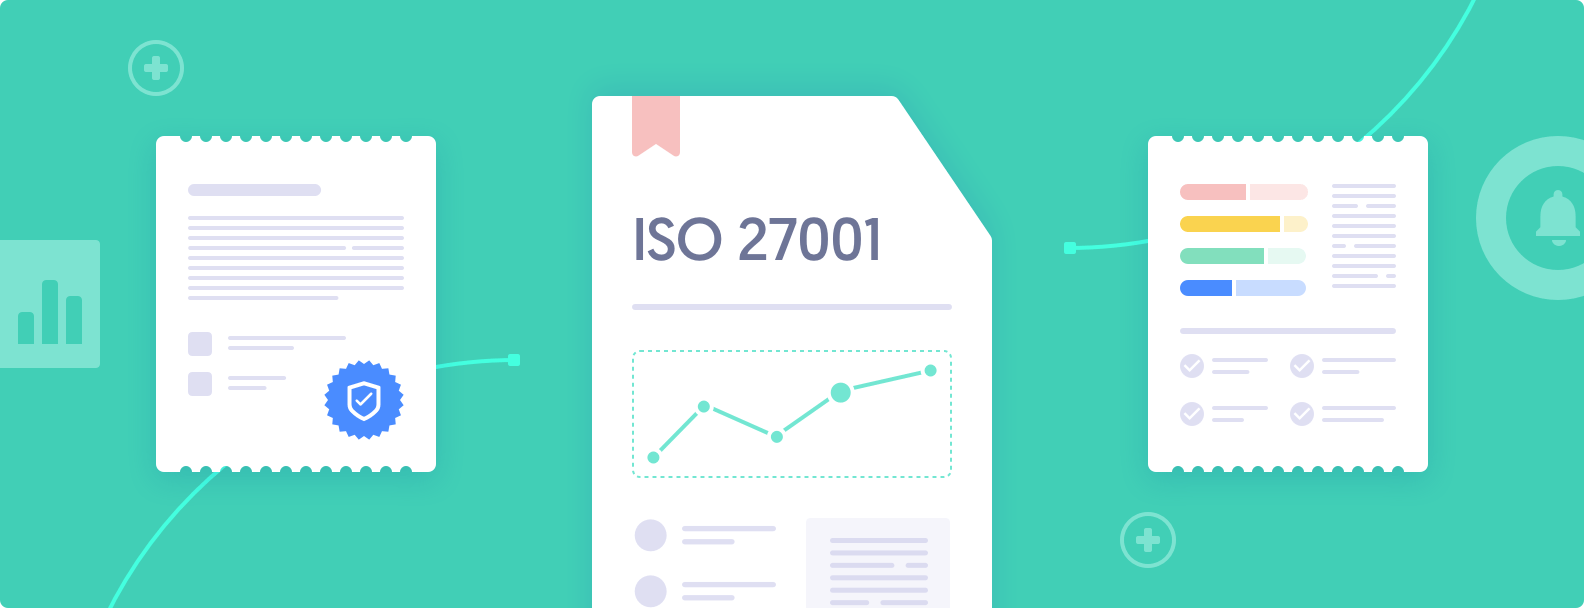 What is an ISO 27001 Certification?